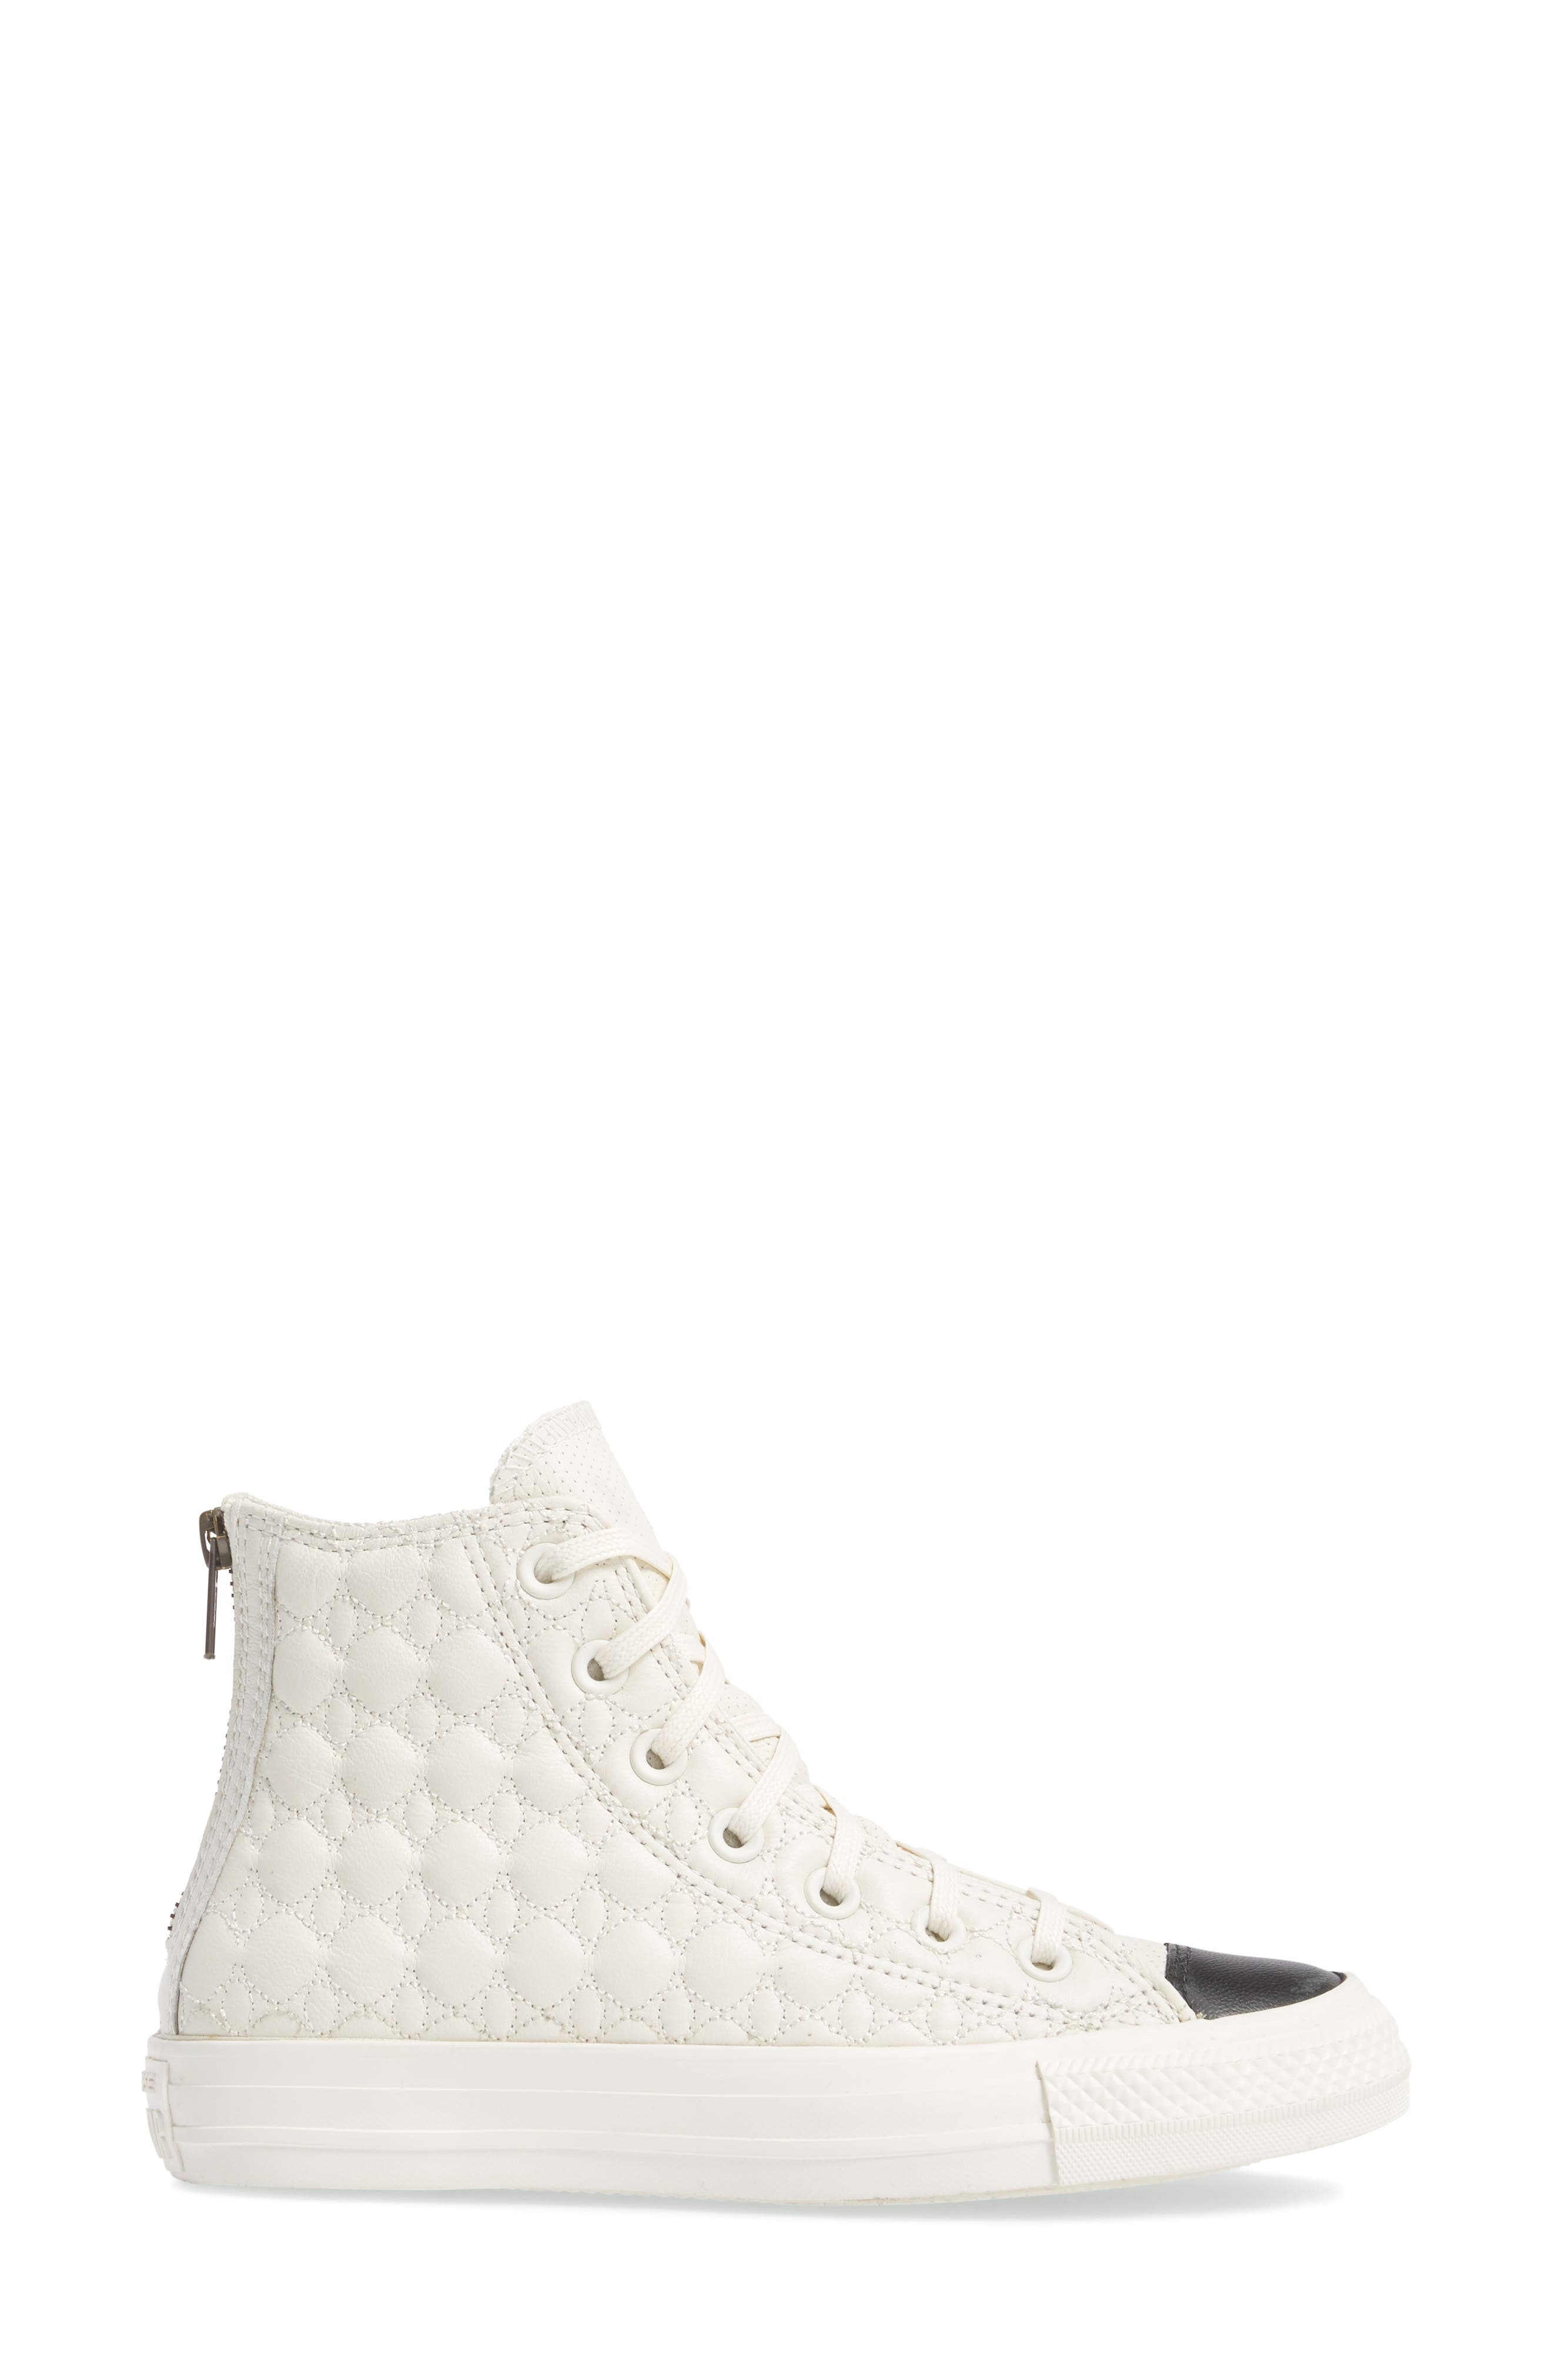 All Star<sup>®</sup> Quilted High Top Sneaker,                             Alternate thumbnail 3, color,